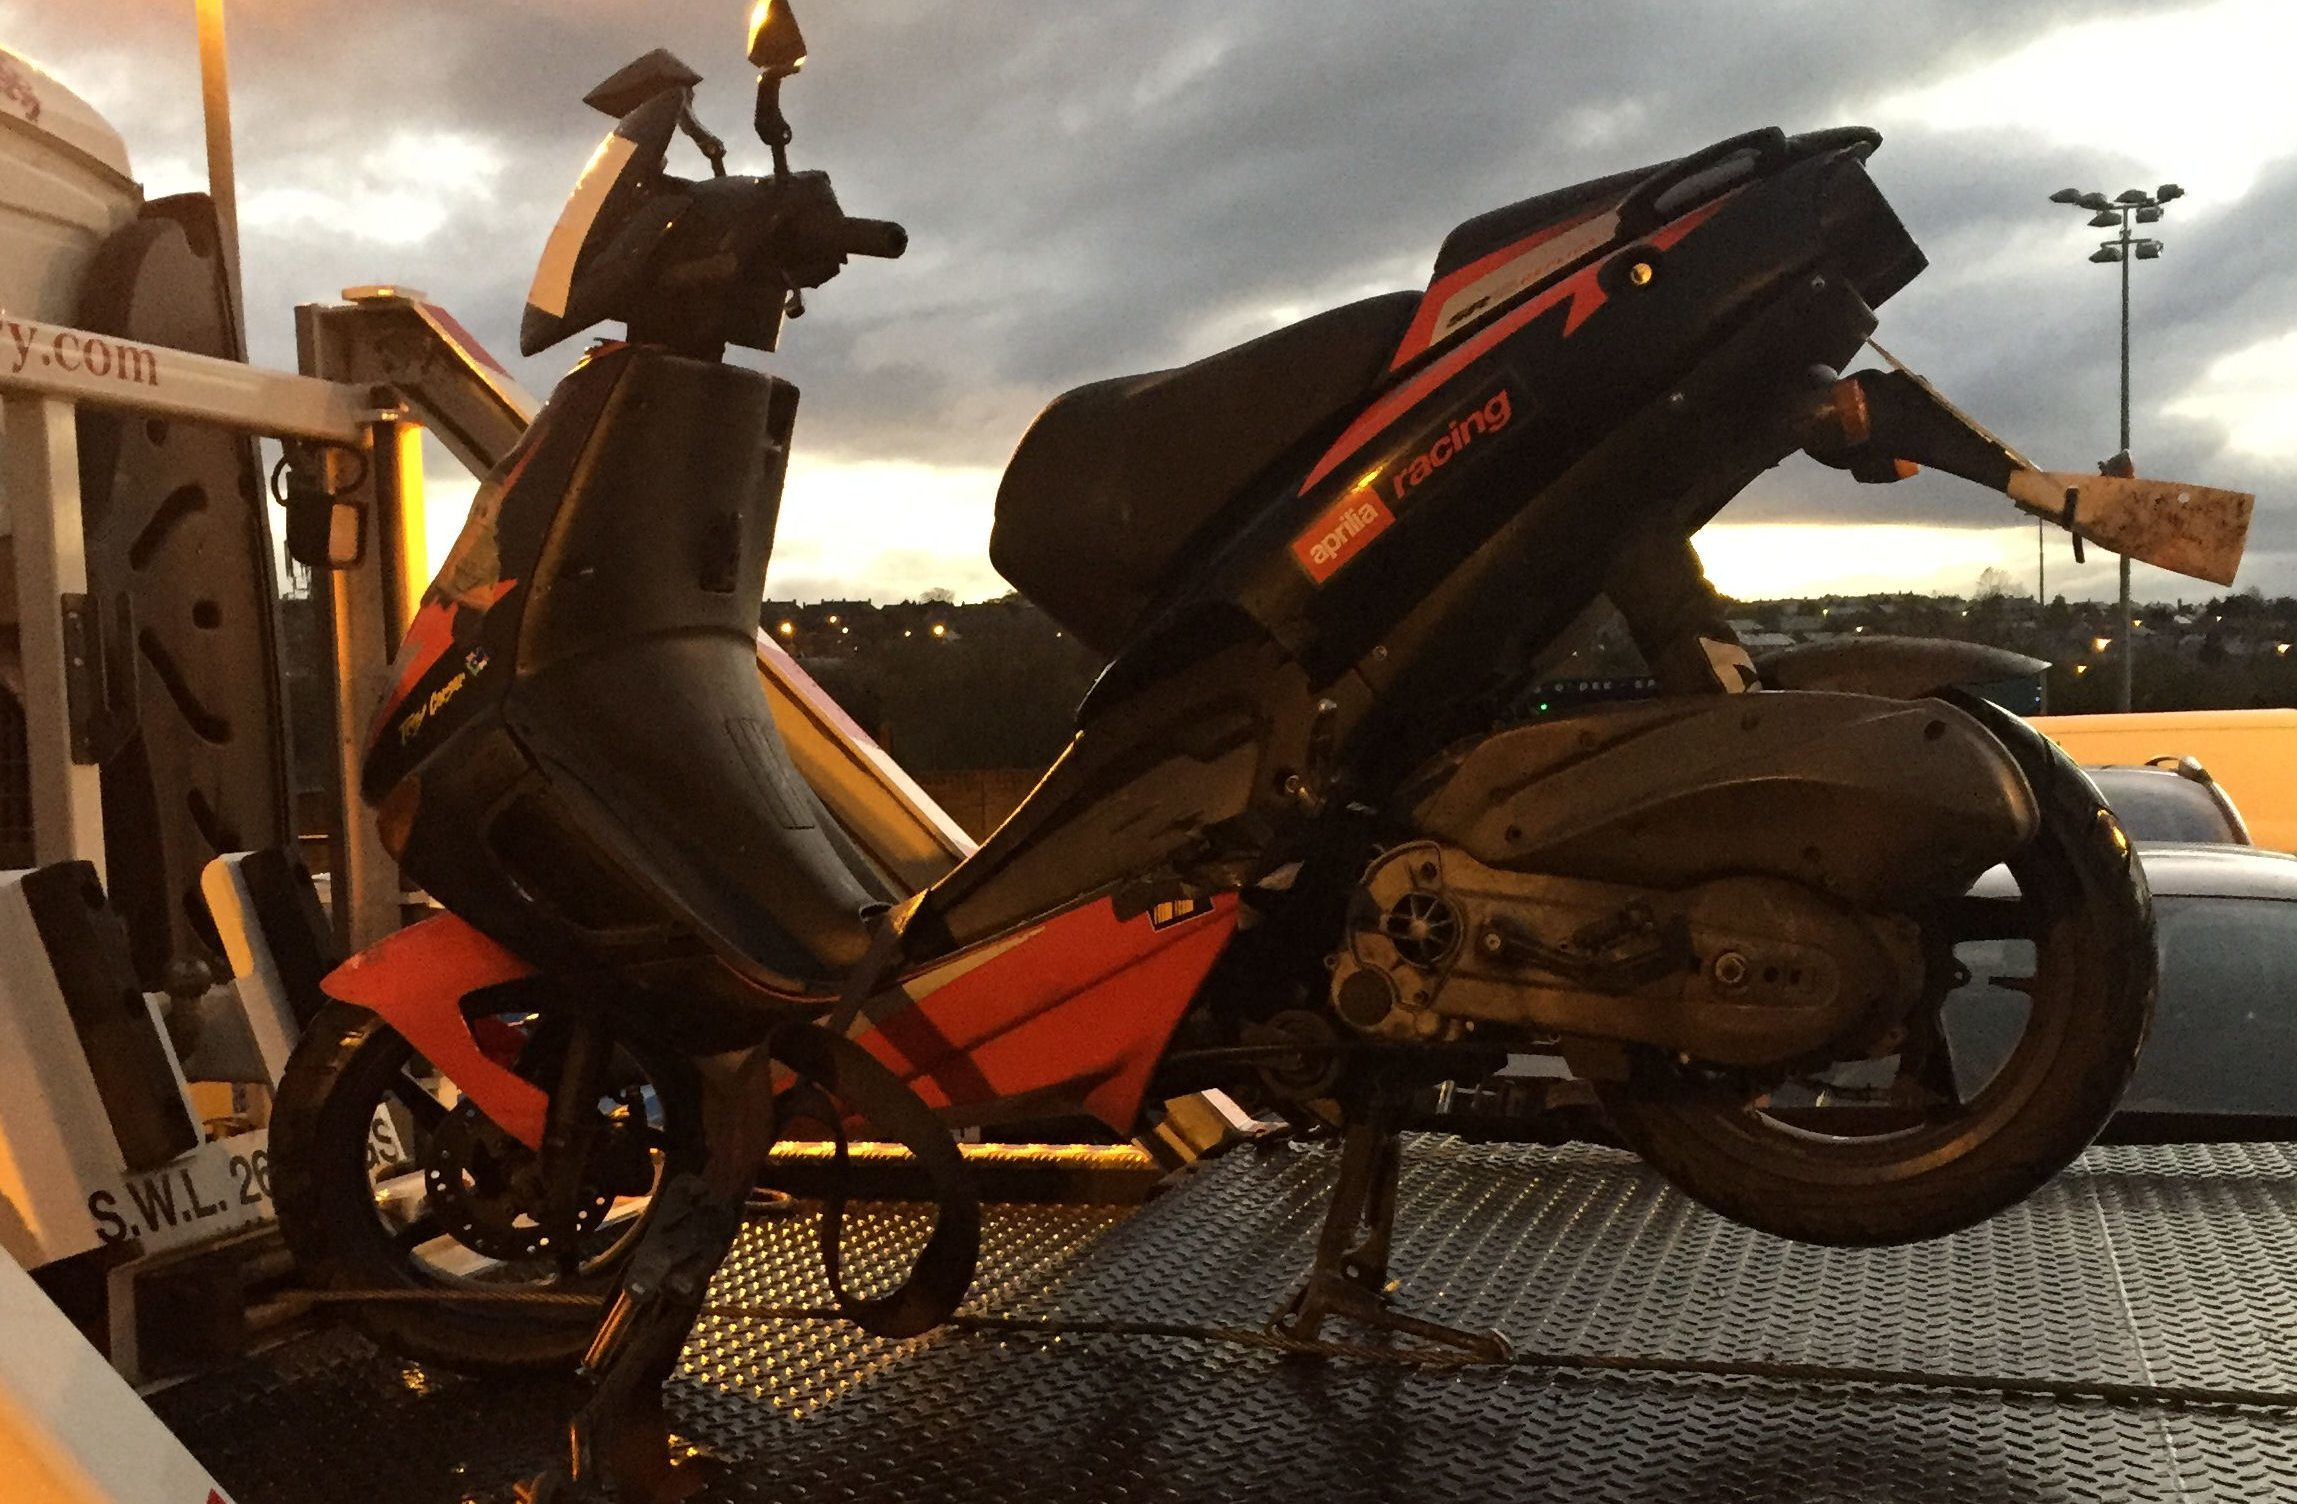 The seized moped